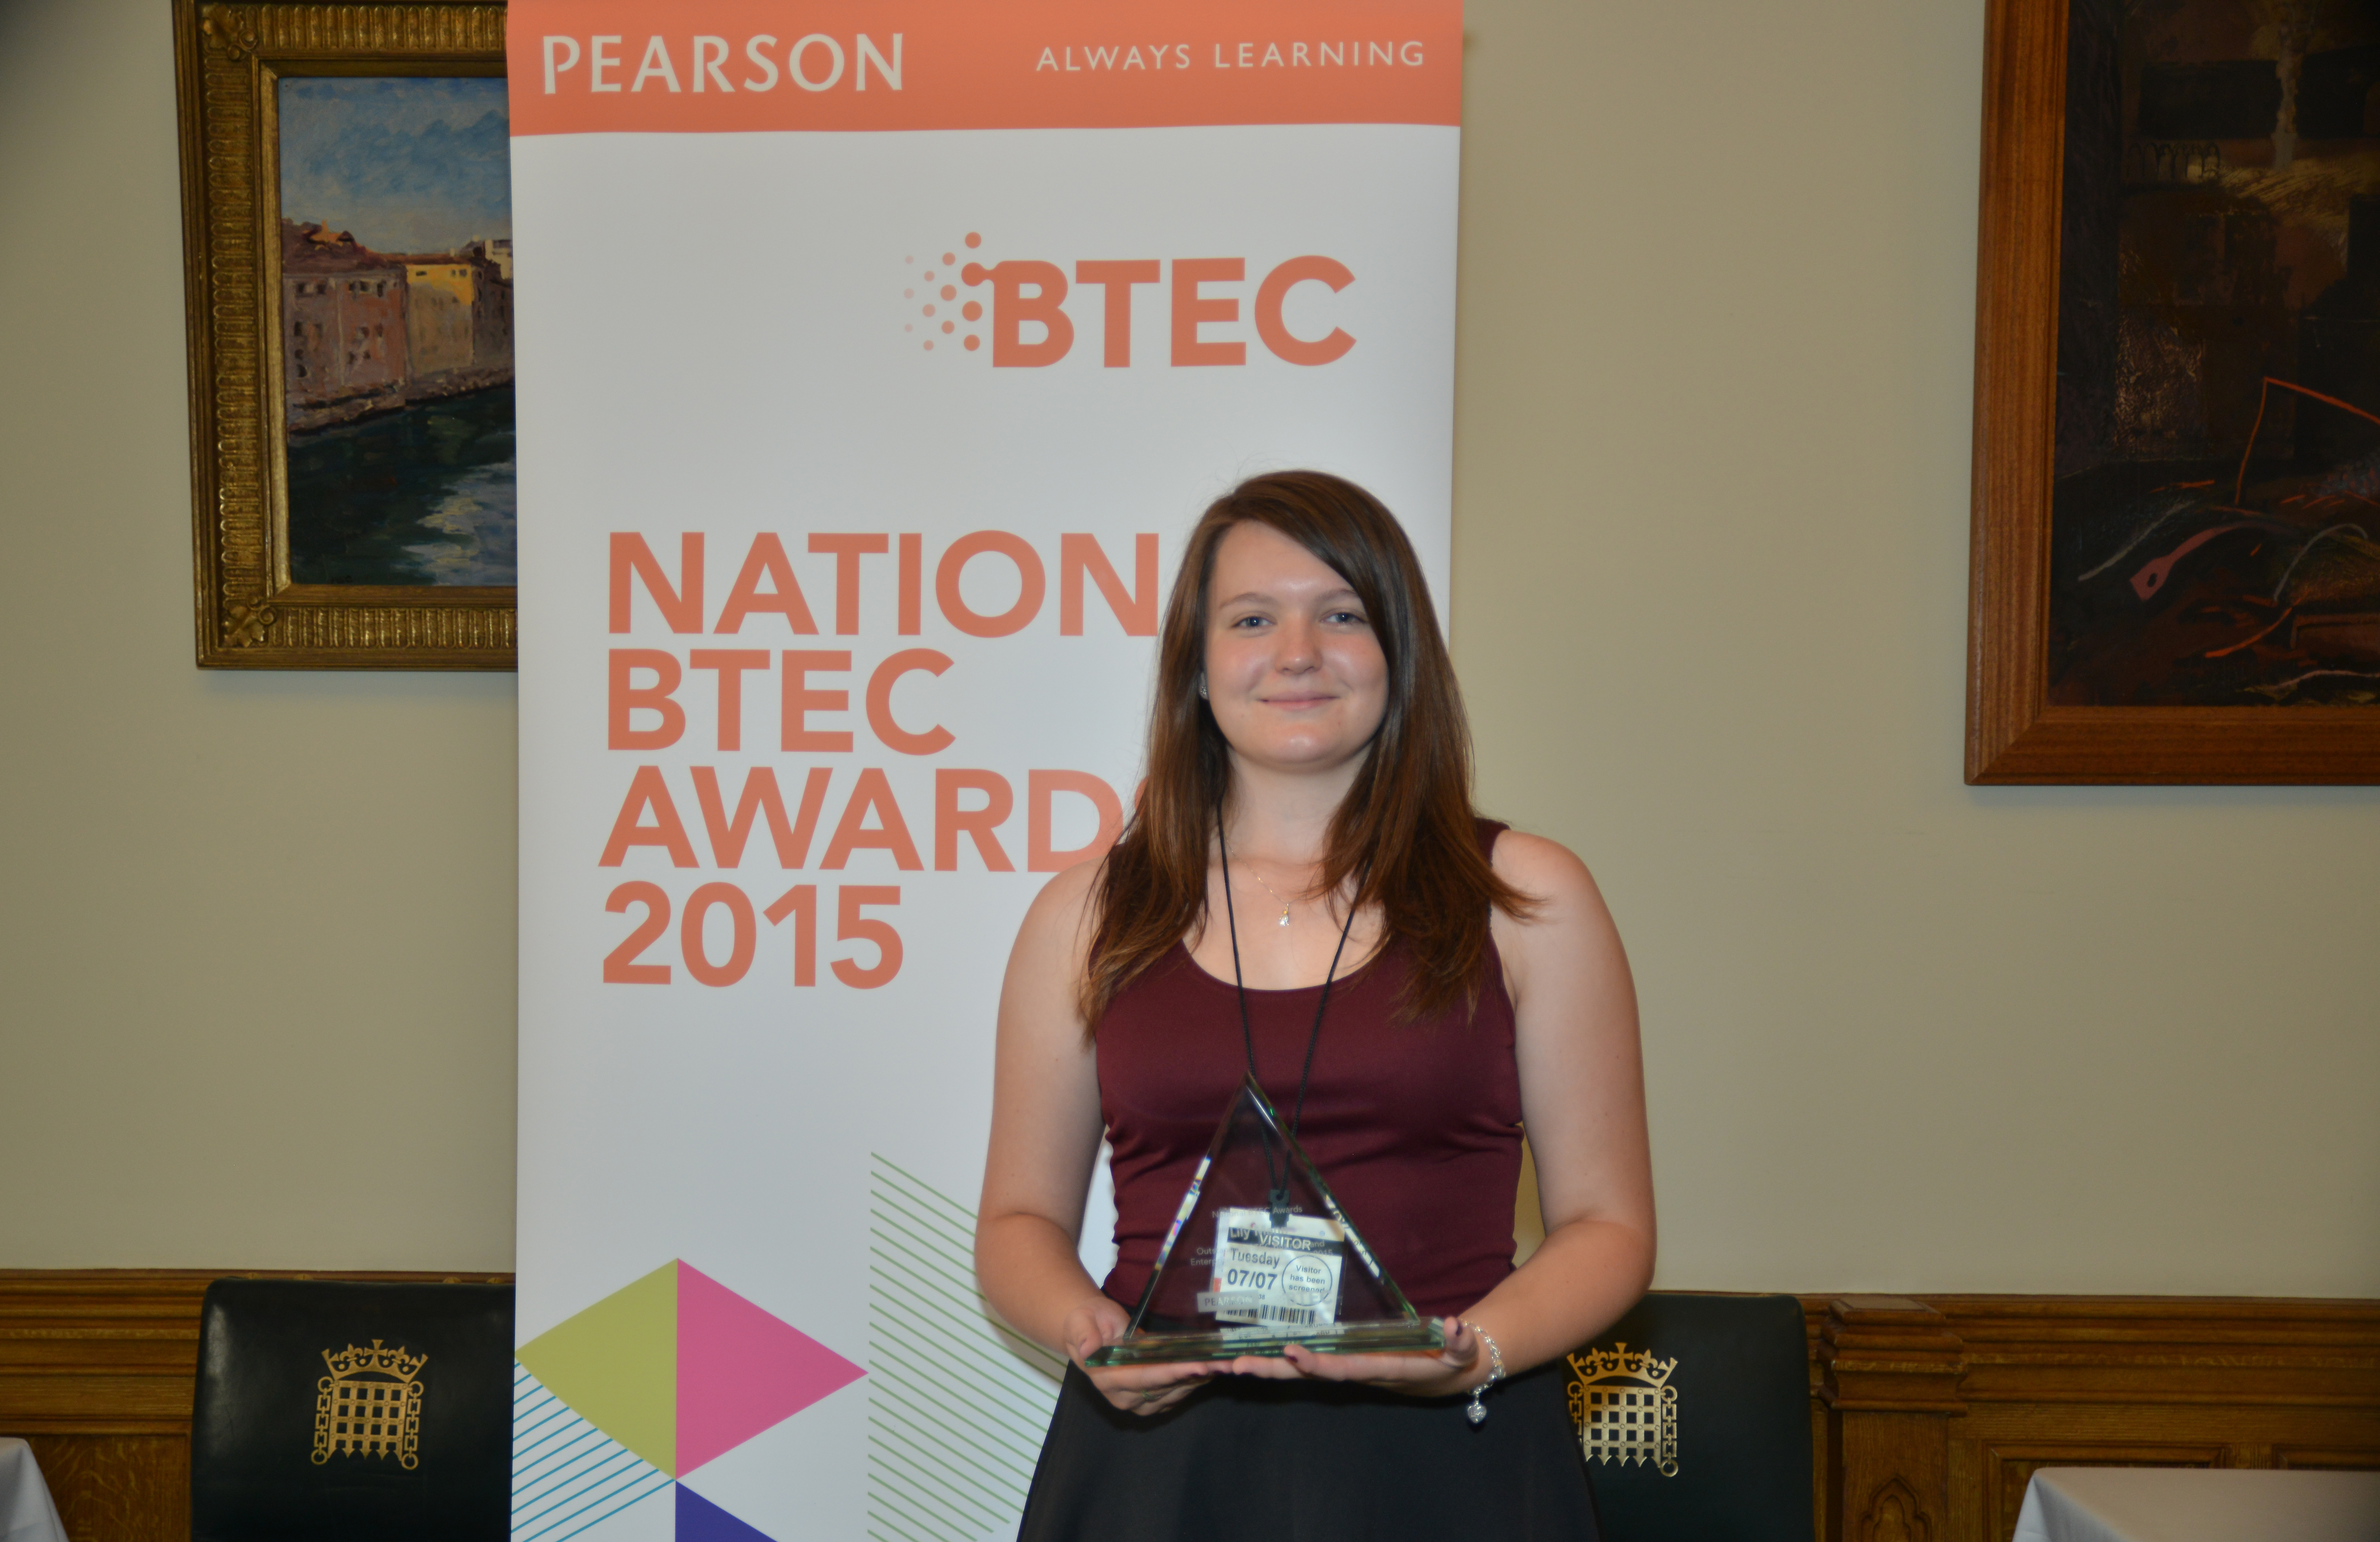 Megan Taylor, aged 19, Nescot College (Epsom)